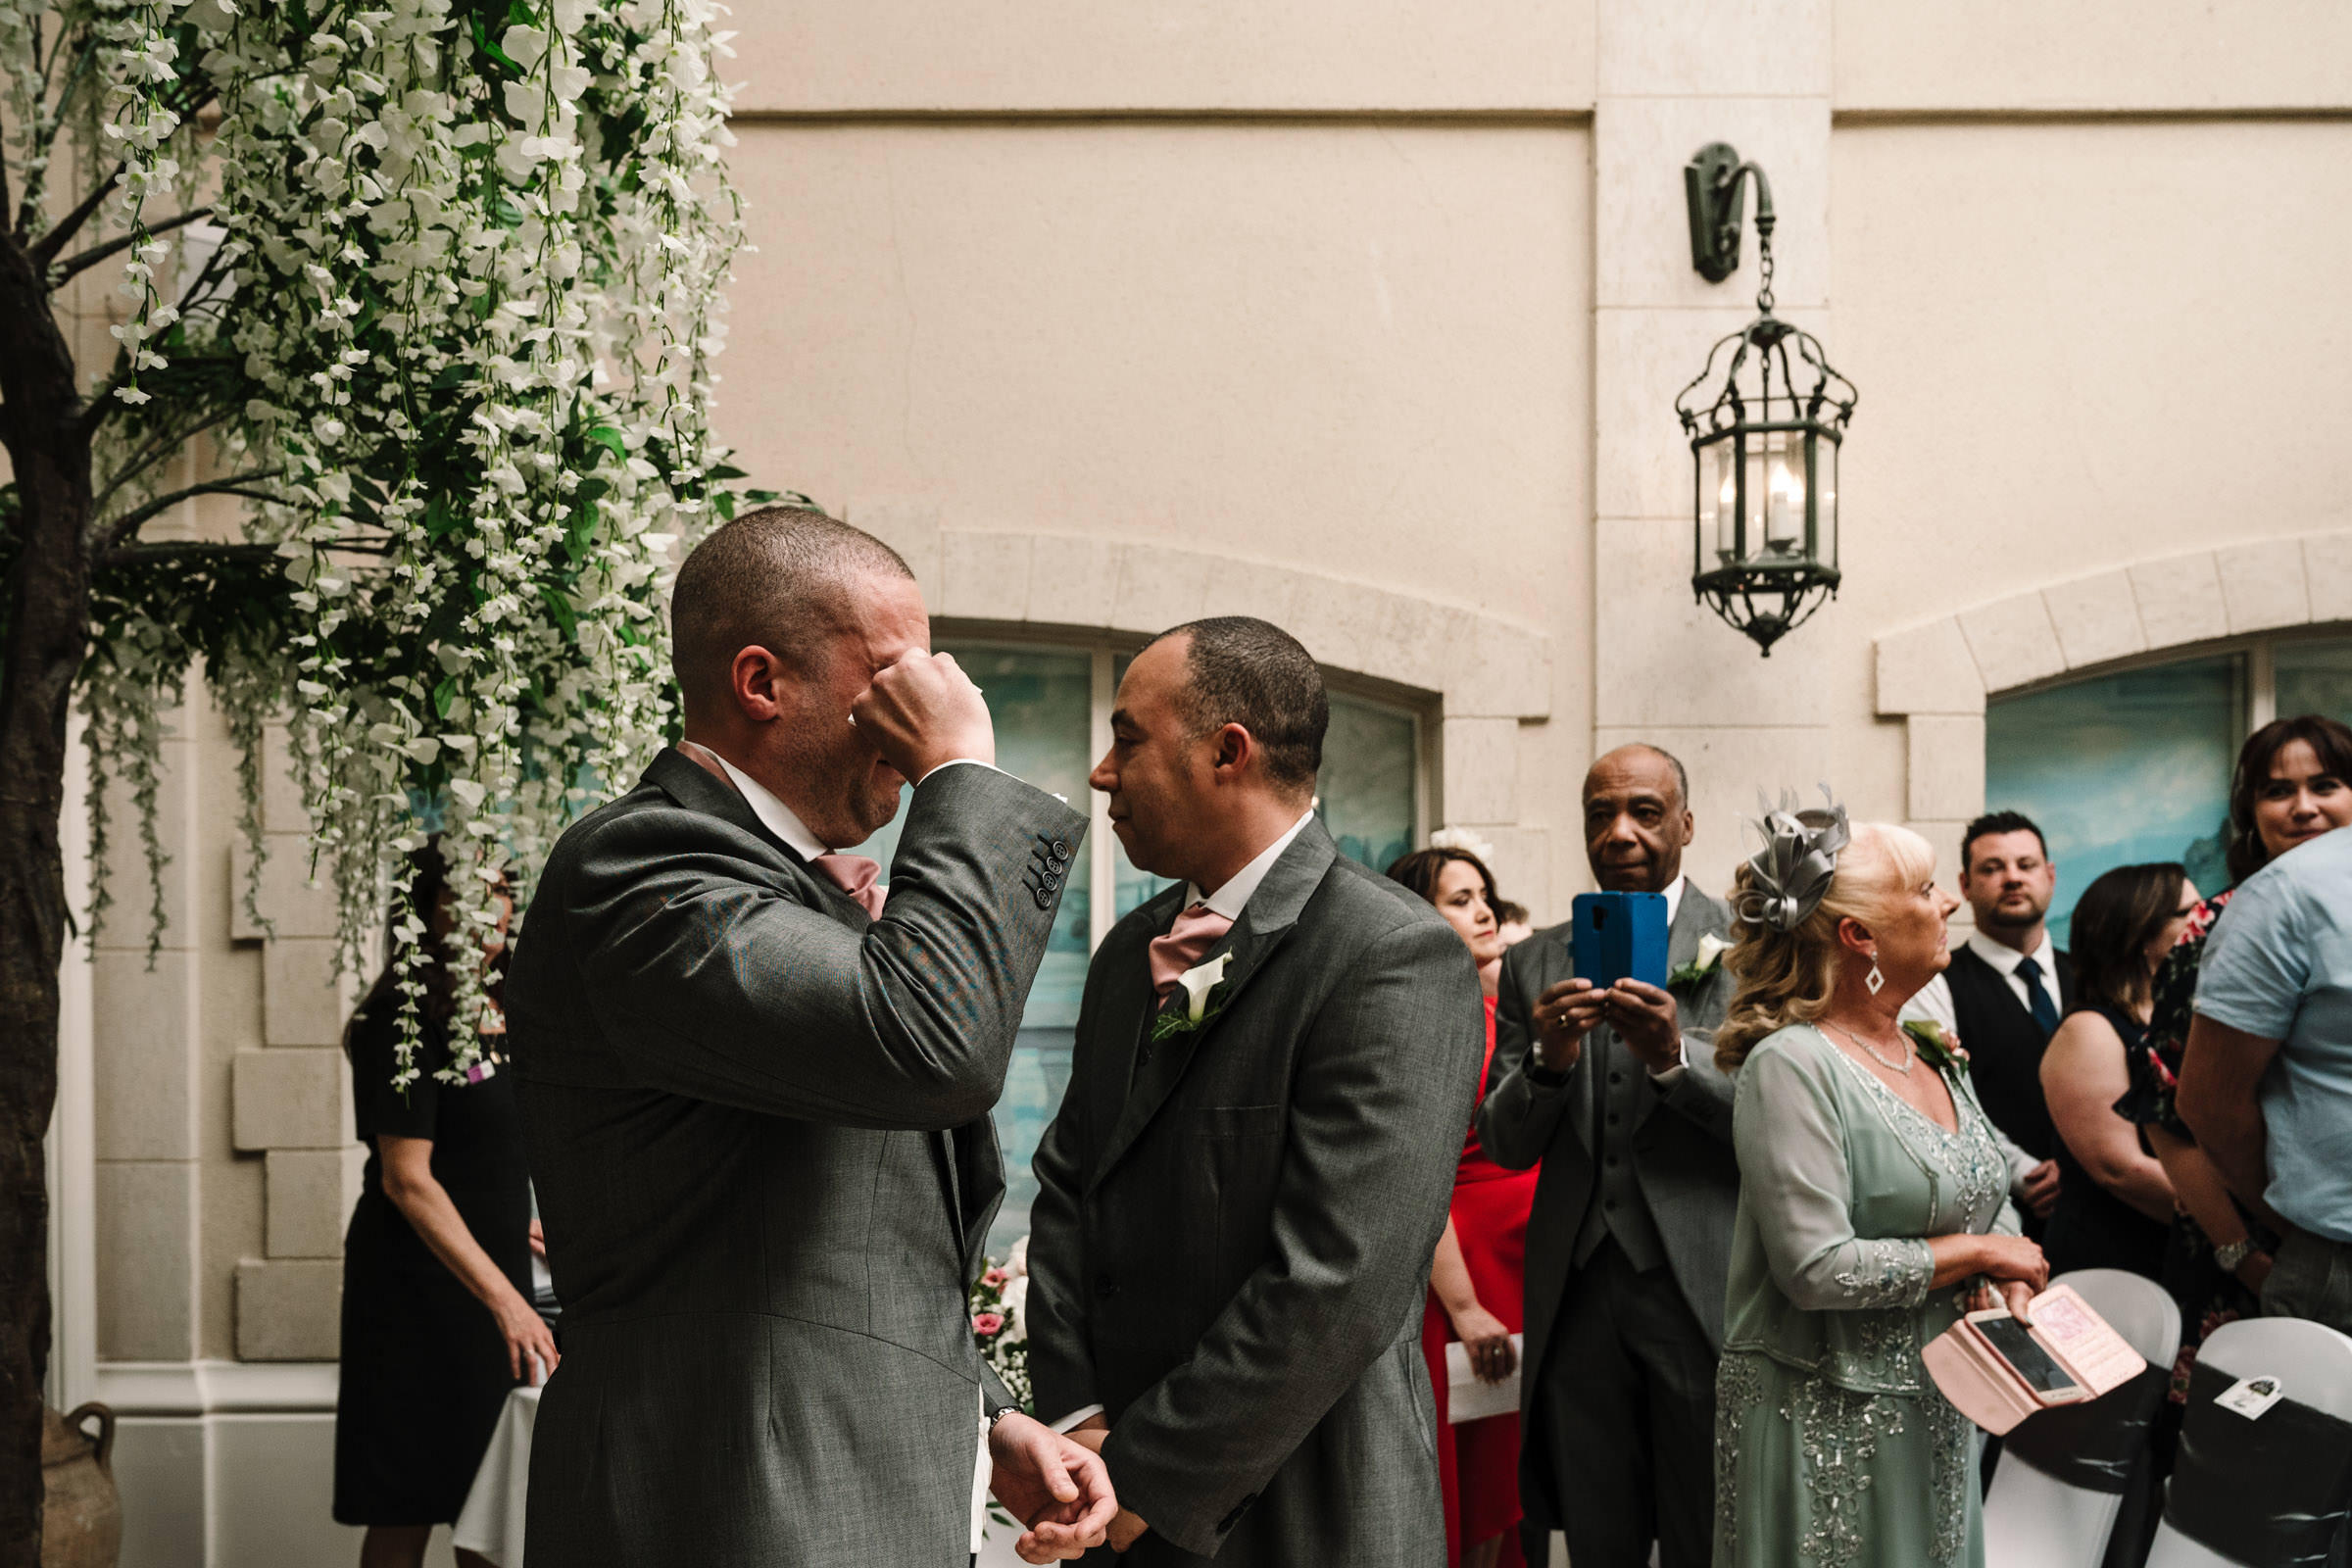 Groom getting emotional at Nailcote hall wedding ceremony